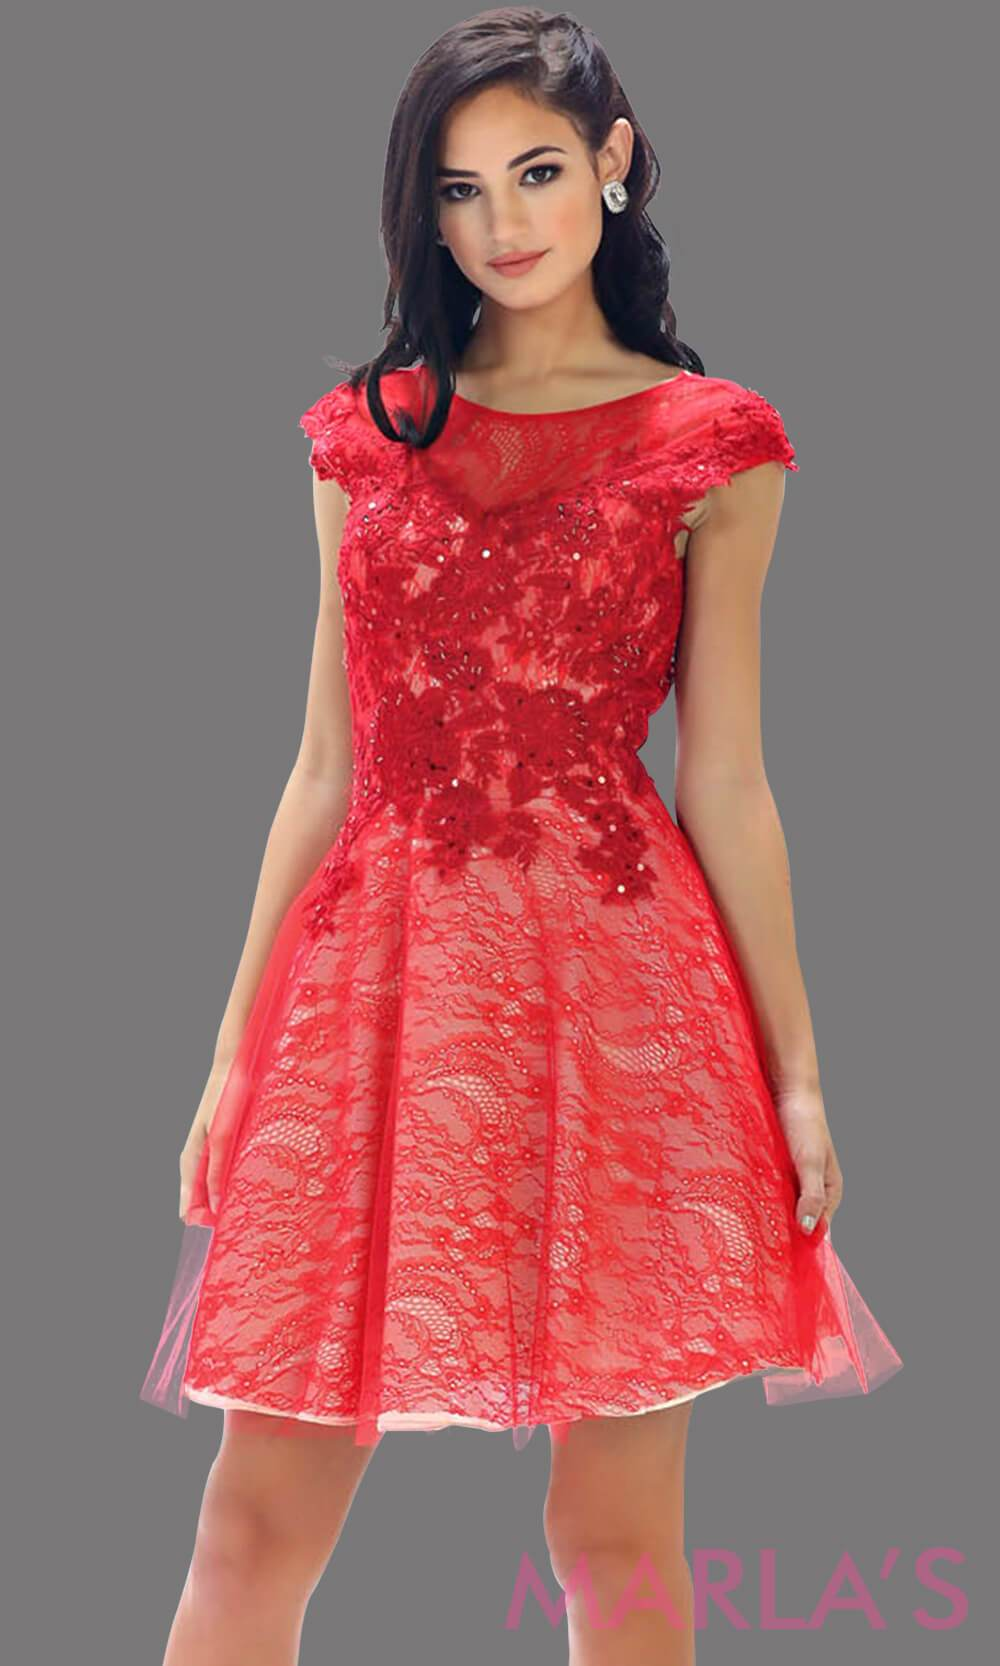 High neck short red puffy dress with lace bodice. This short grade 8 graduation dress has a low v back. This is perfect for homecoming, semi formal, or party dress. Available in plus sizes